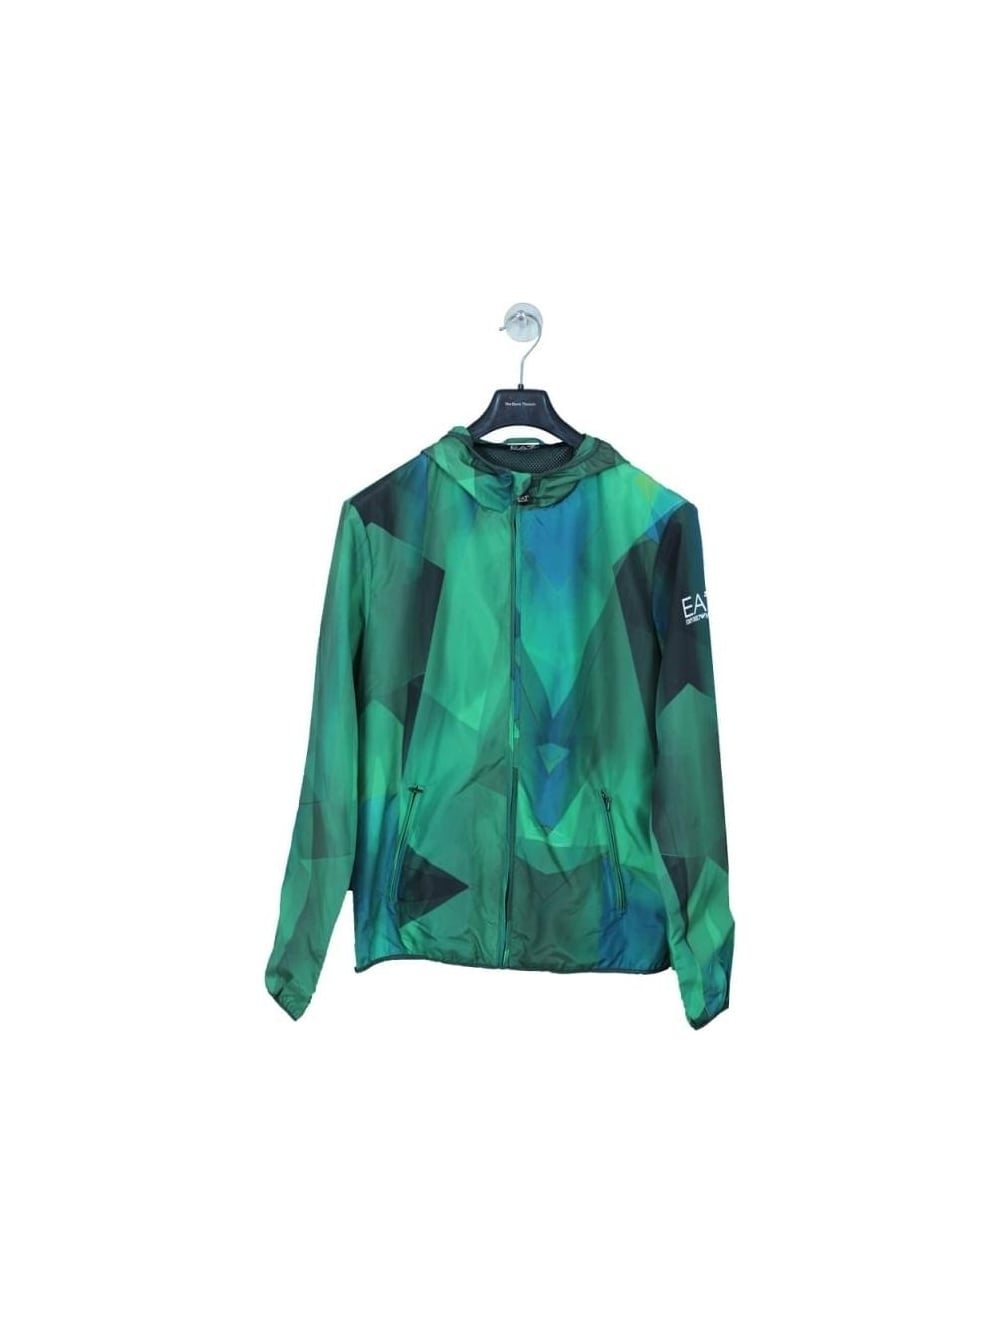 942113f73 EA7 Core ID Graphic Jacket in Forrest - Northern Threads